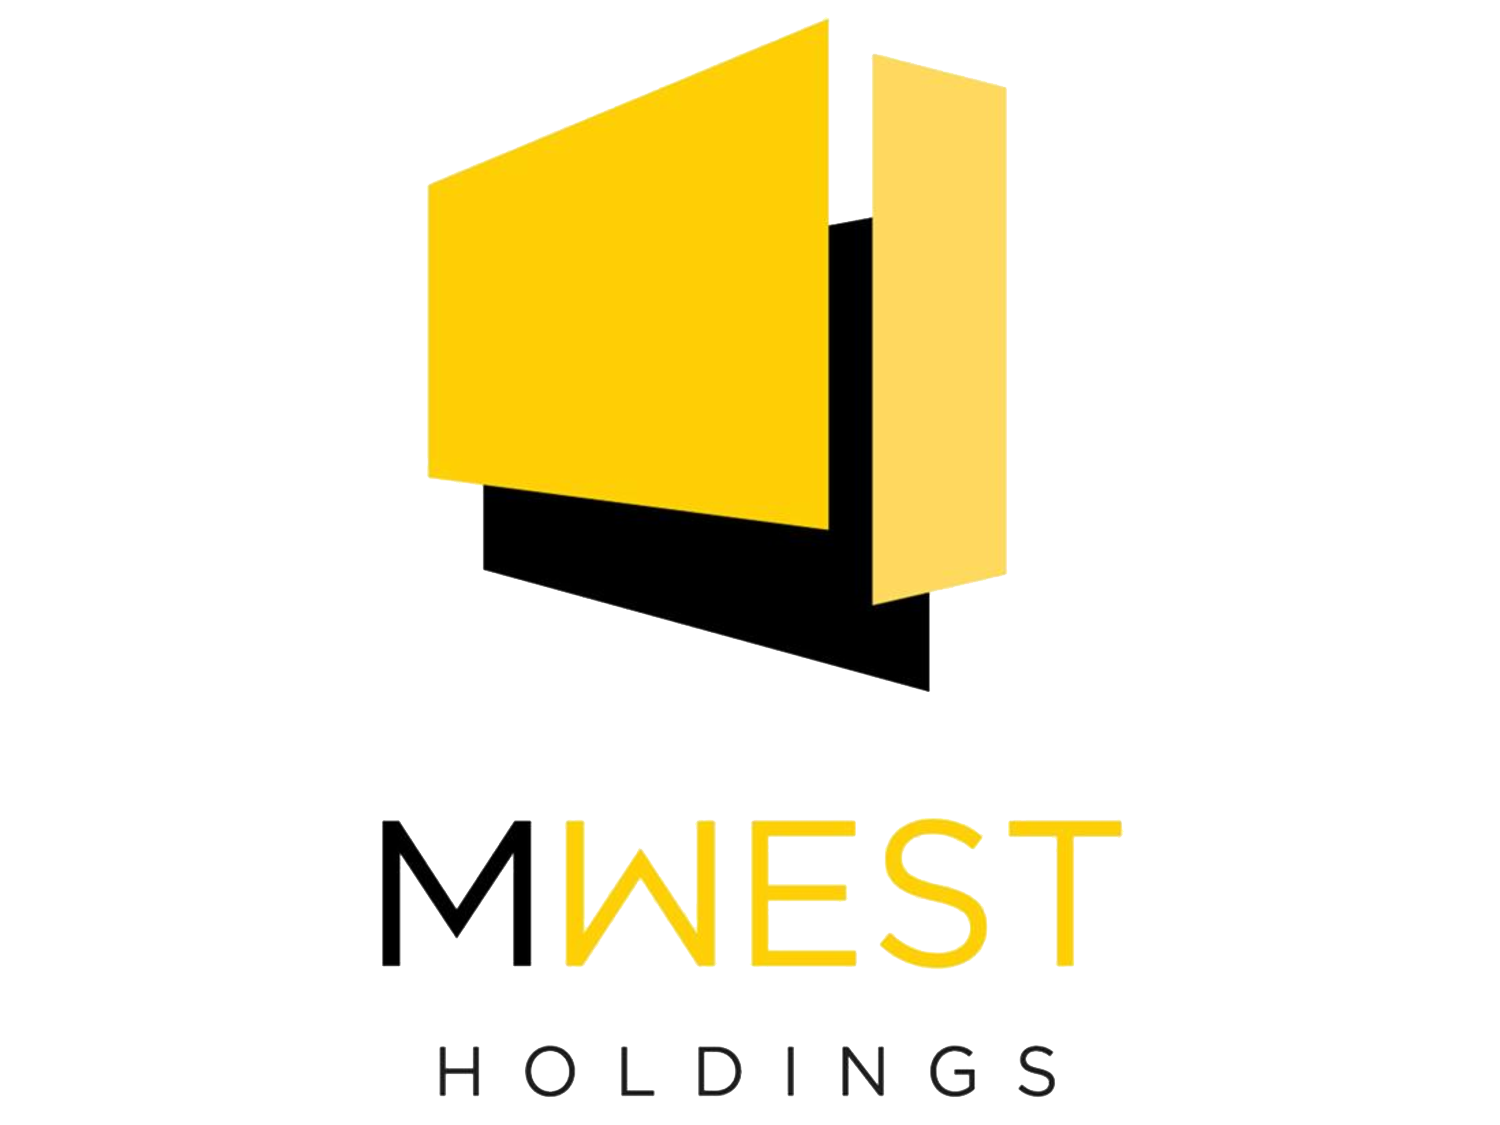 M West Holdings